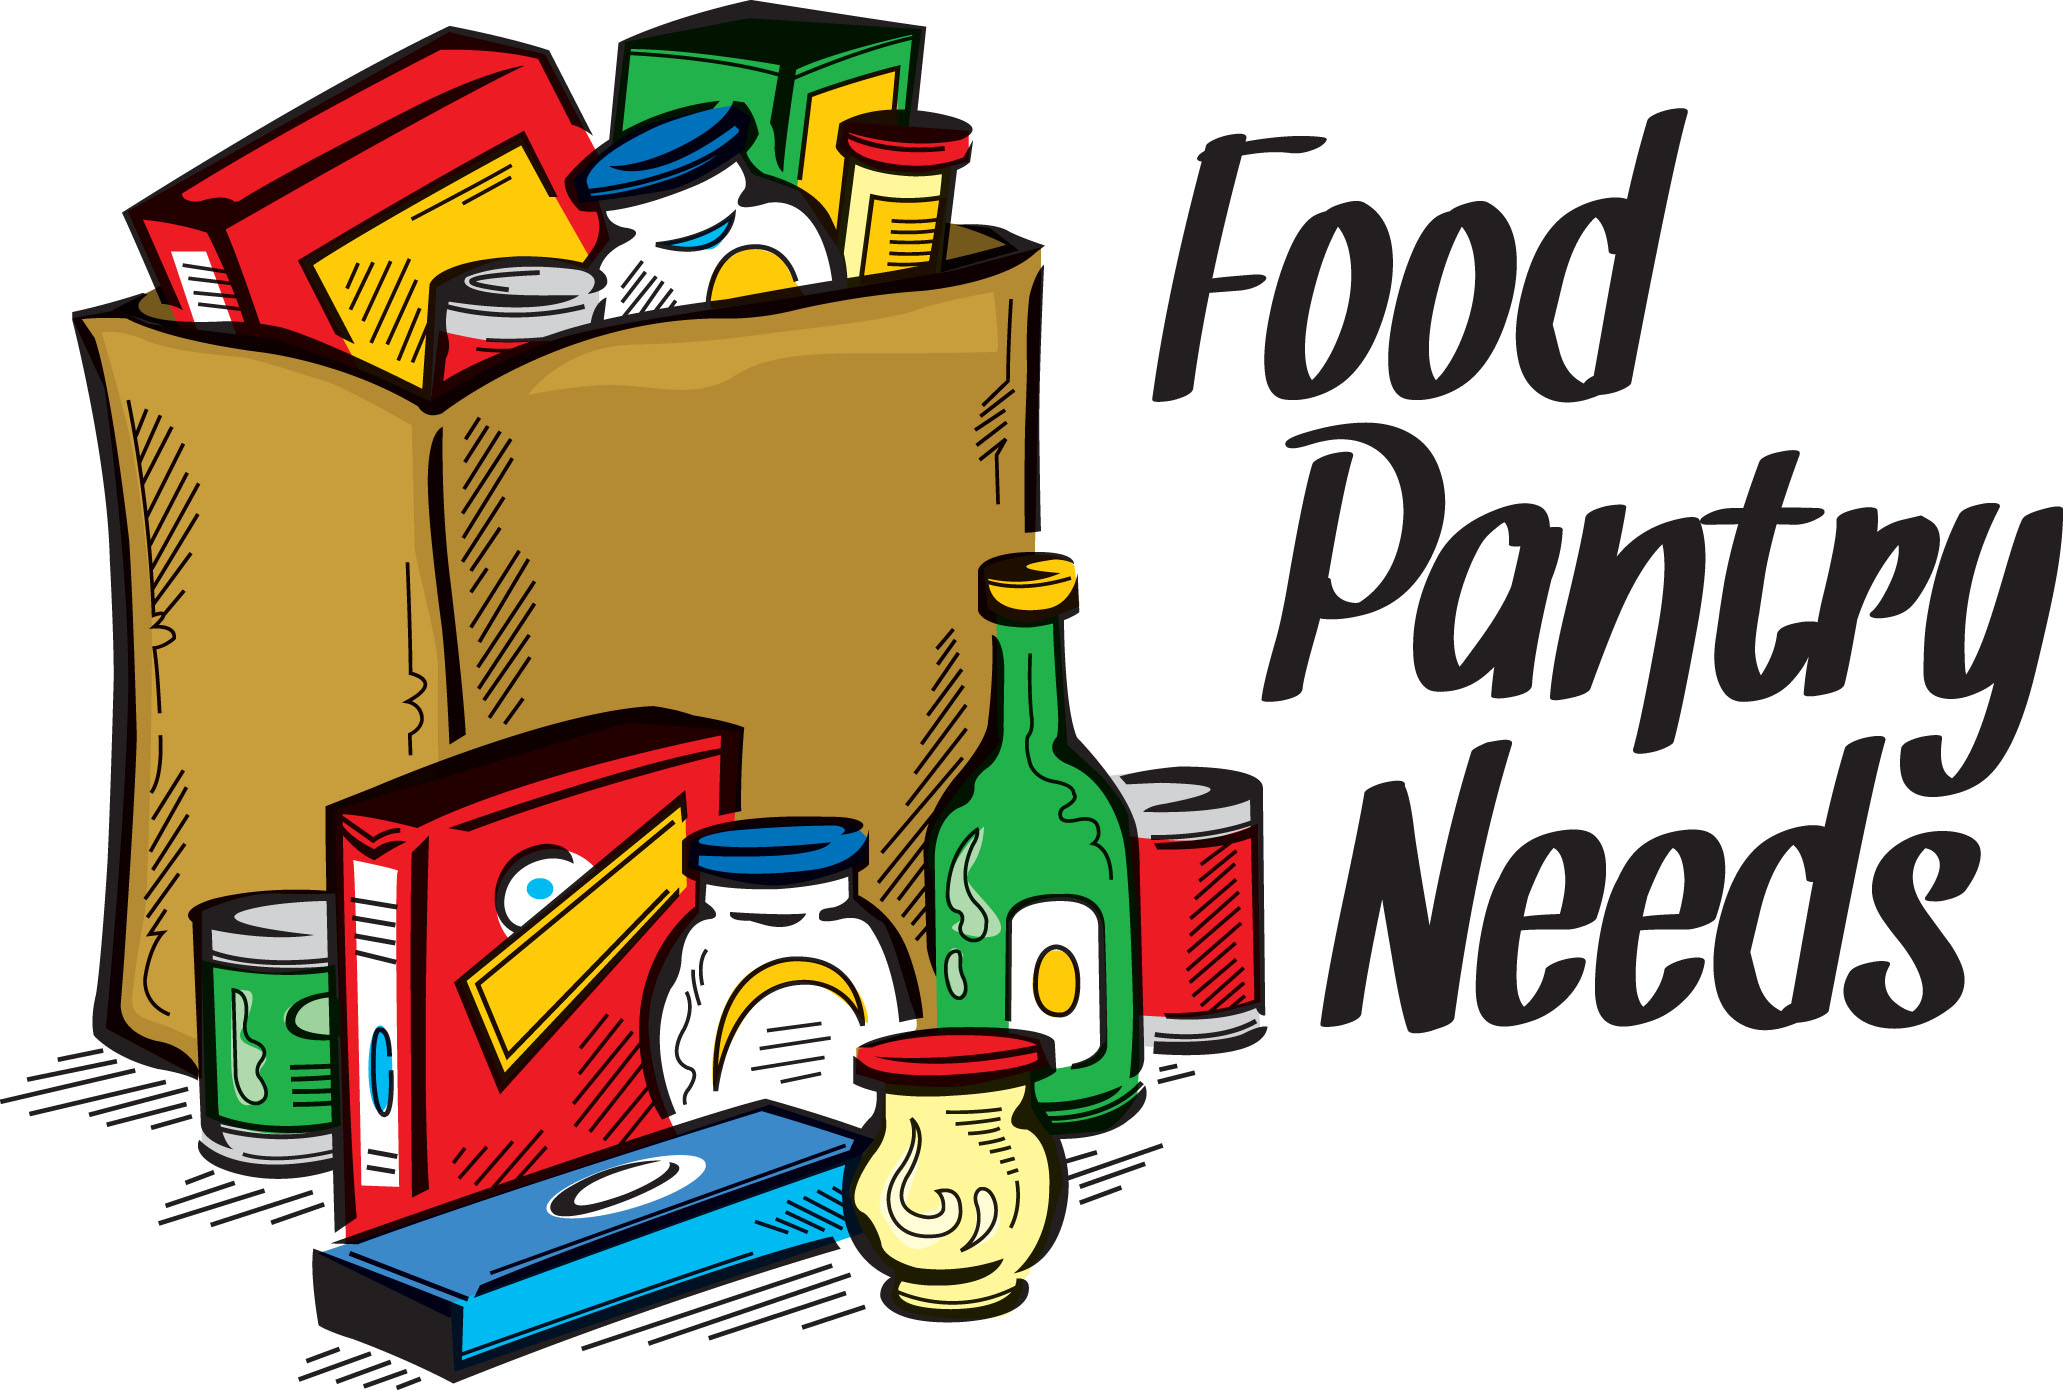 Food Pantry Clipart Food-Food Pantry Clipart Food-14